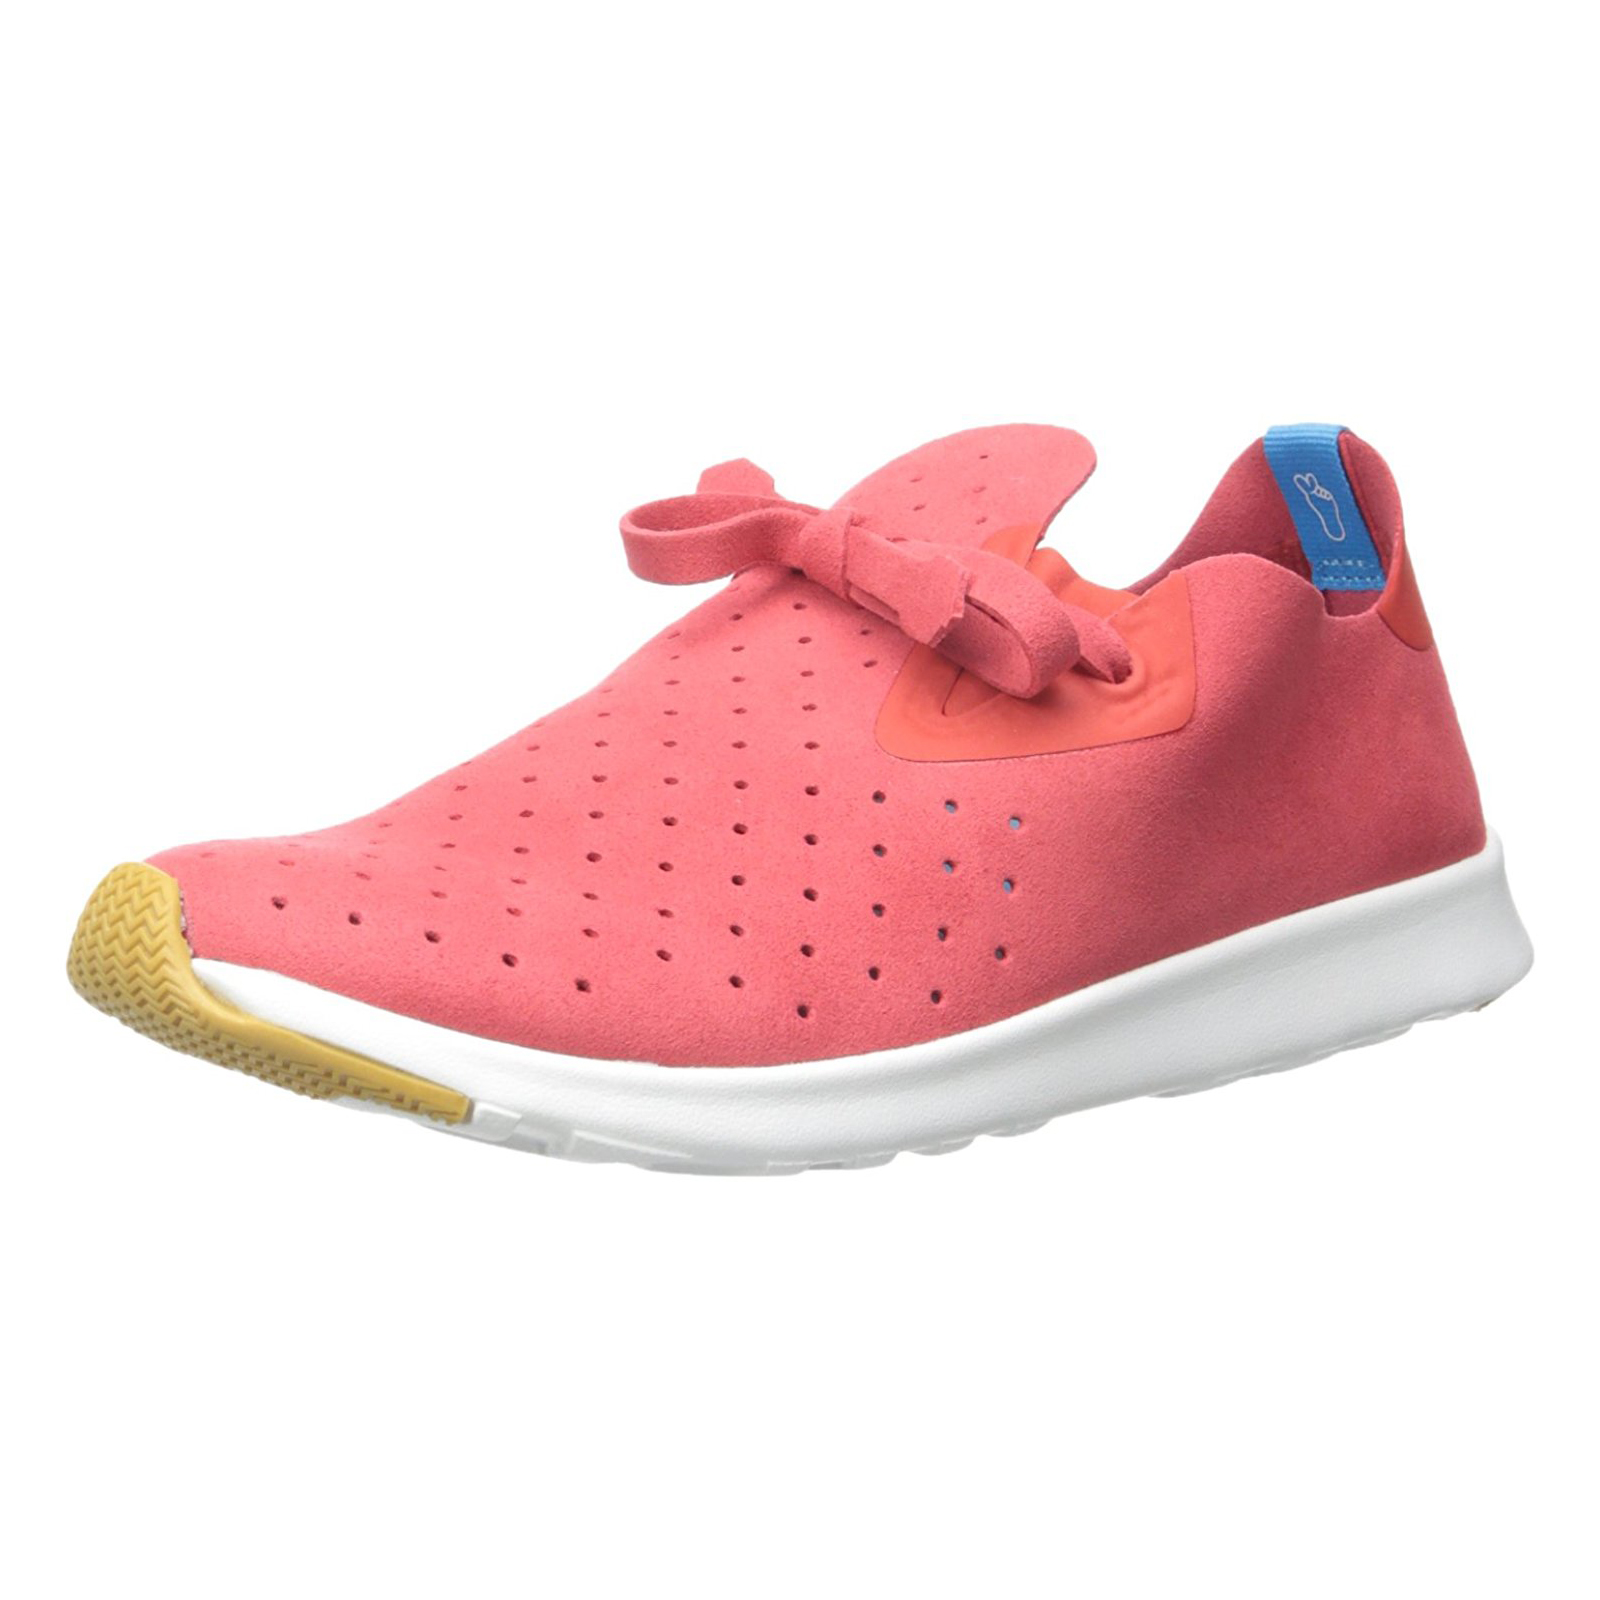 Native Turnschuhe Apollo Moc Torch Torch Torch rot  Shell Weiß rot dcf2ca